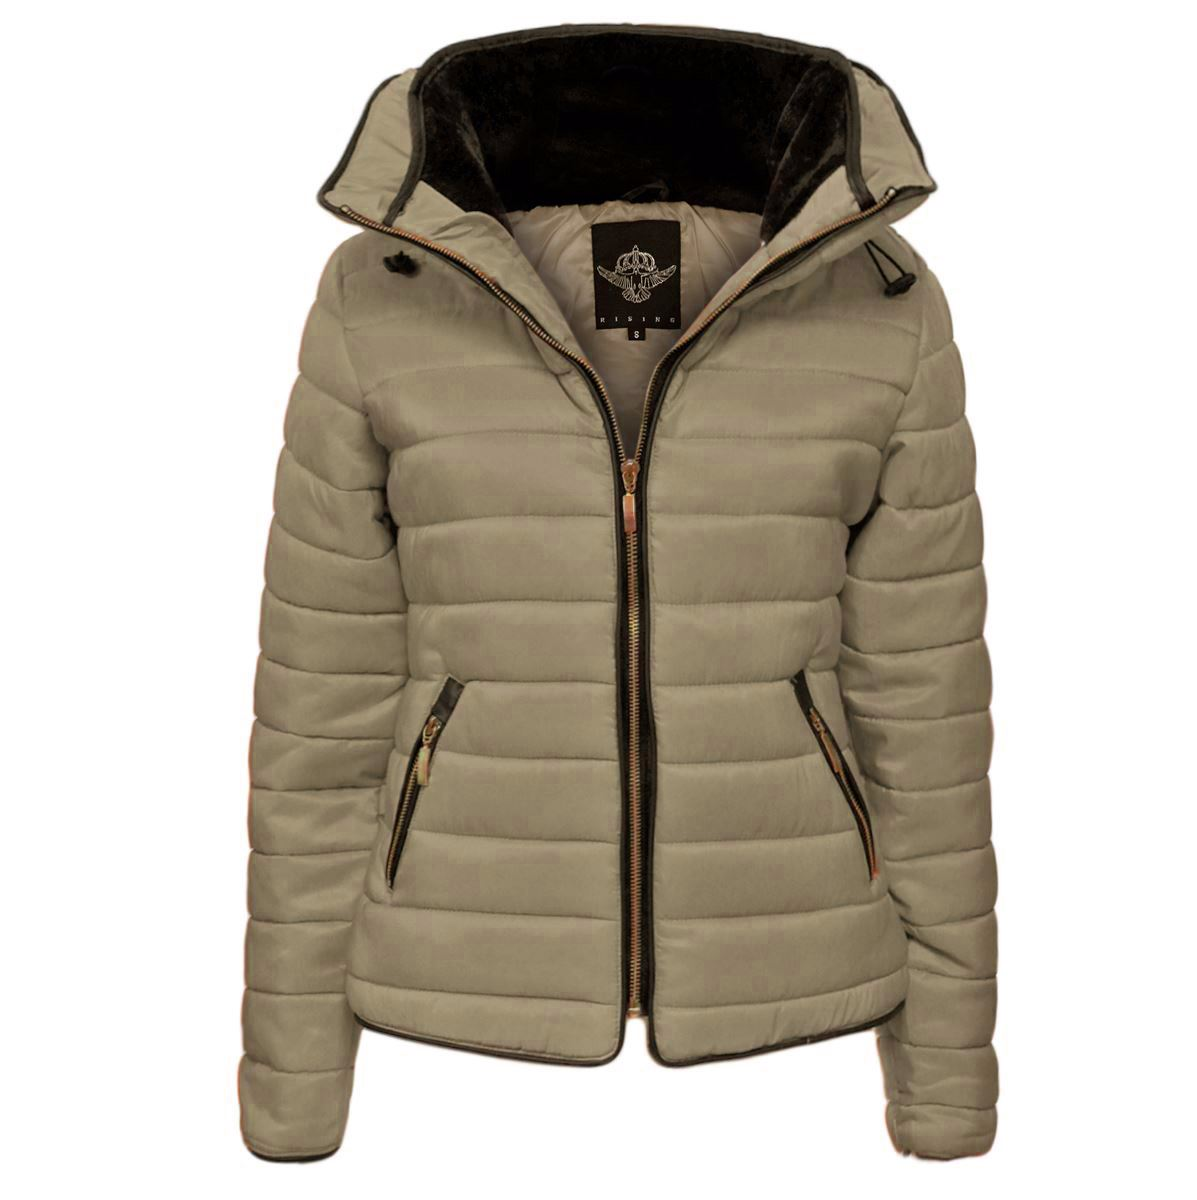 Puffer coat for women